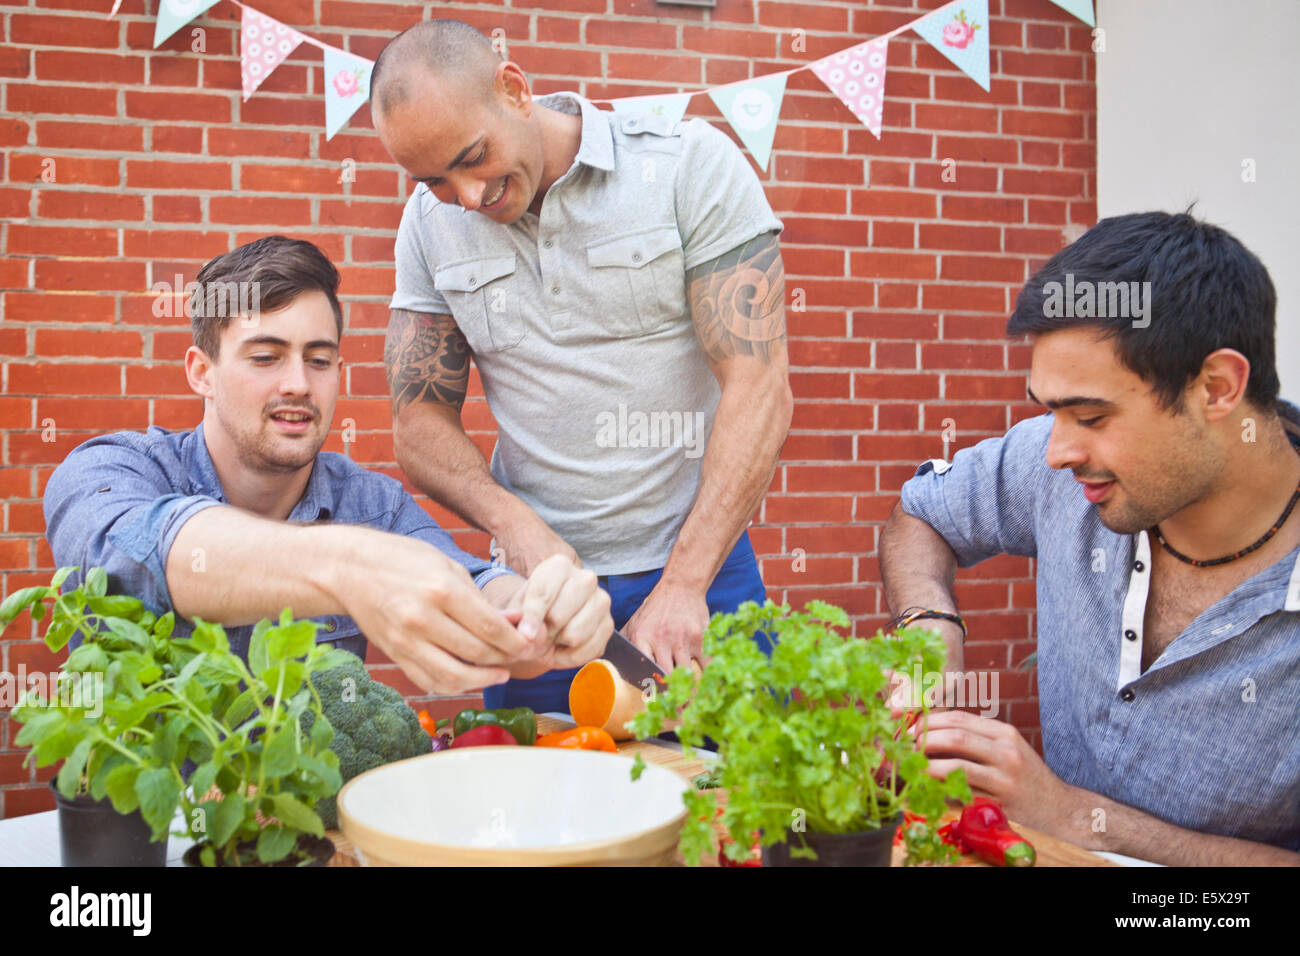 Three male friends chopping and preparing food for garden barbecue - Stock Image